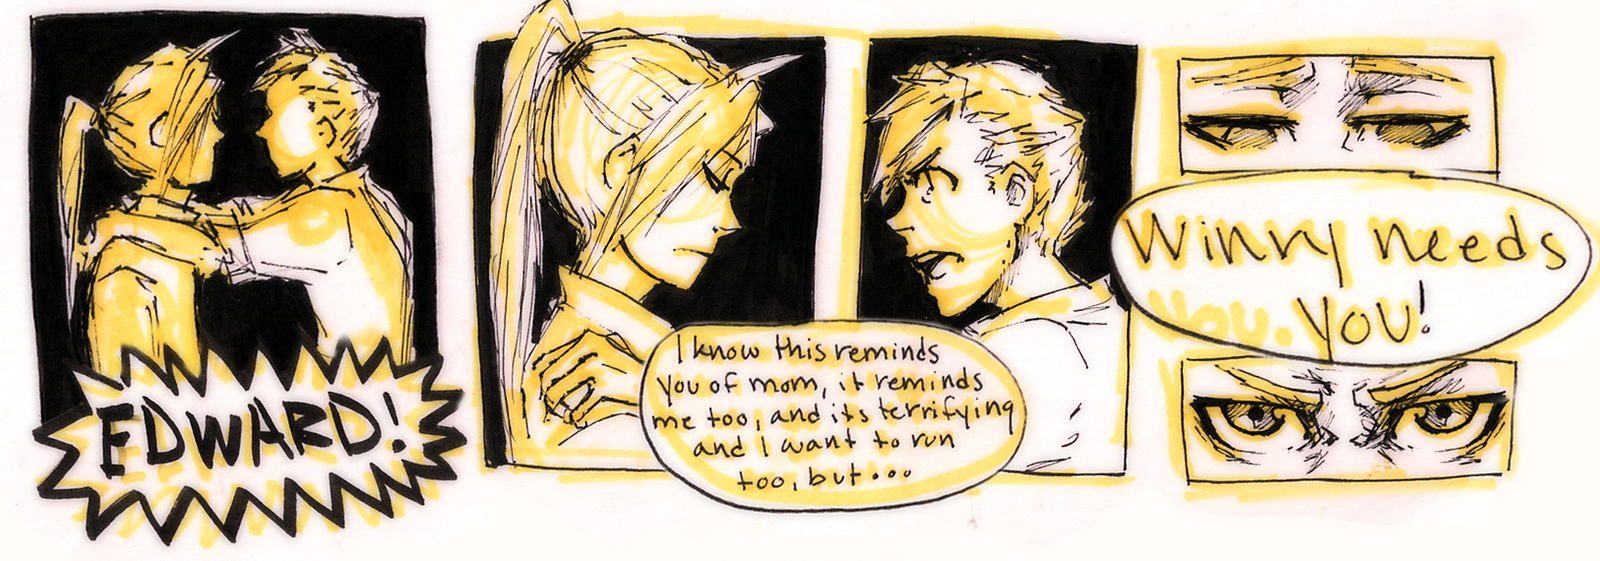 FMA Omake: Memories p6 by roolph